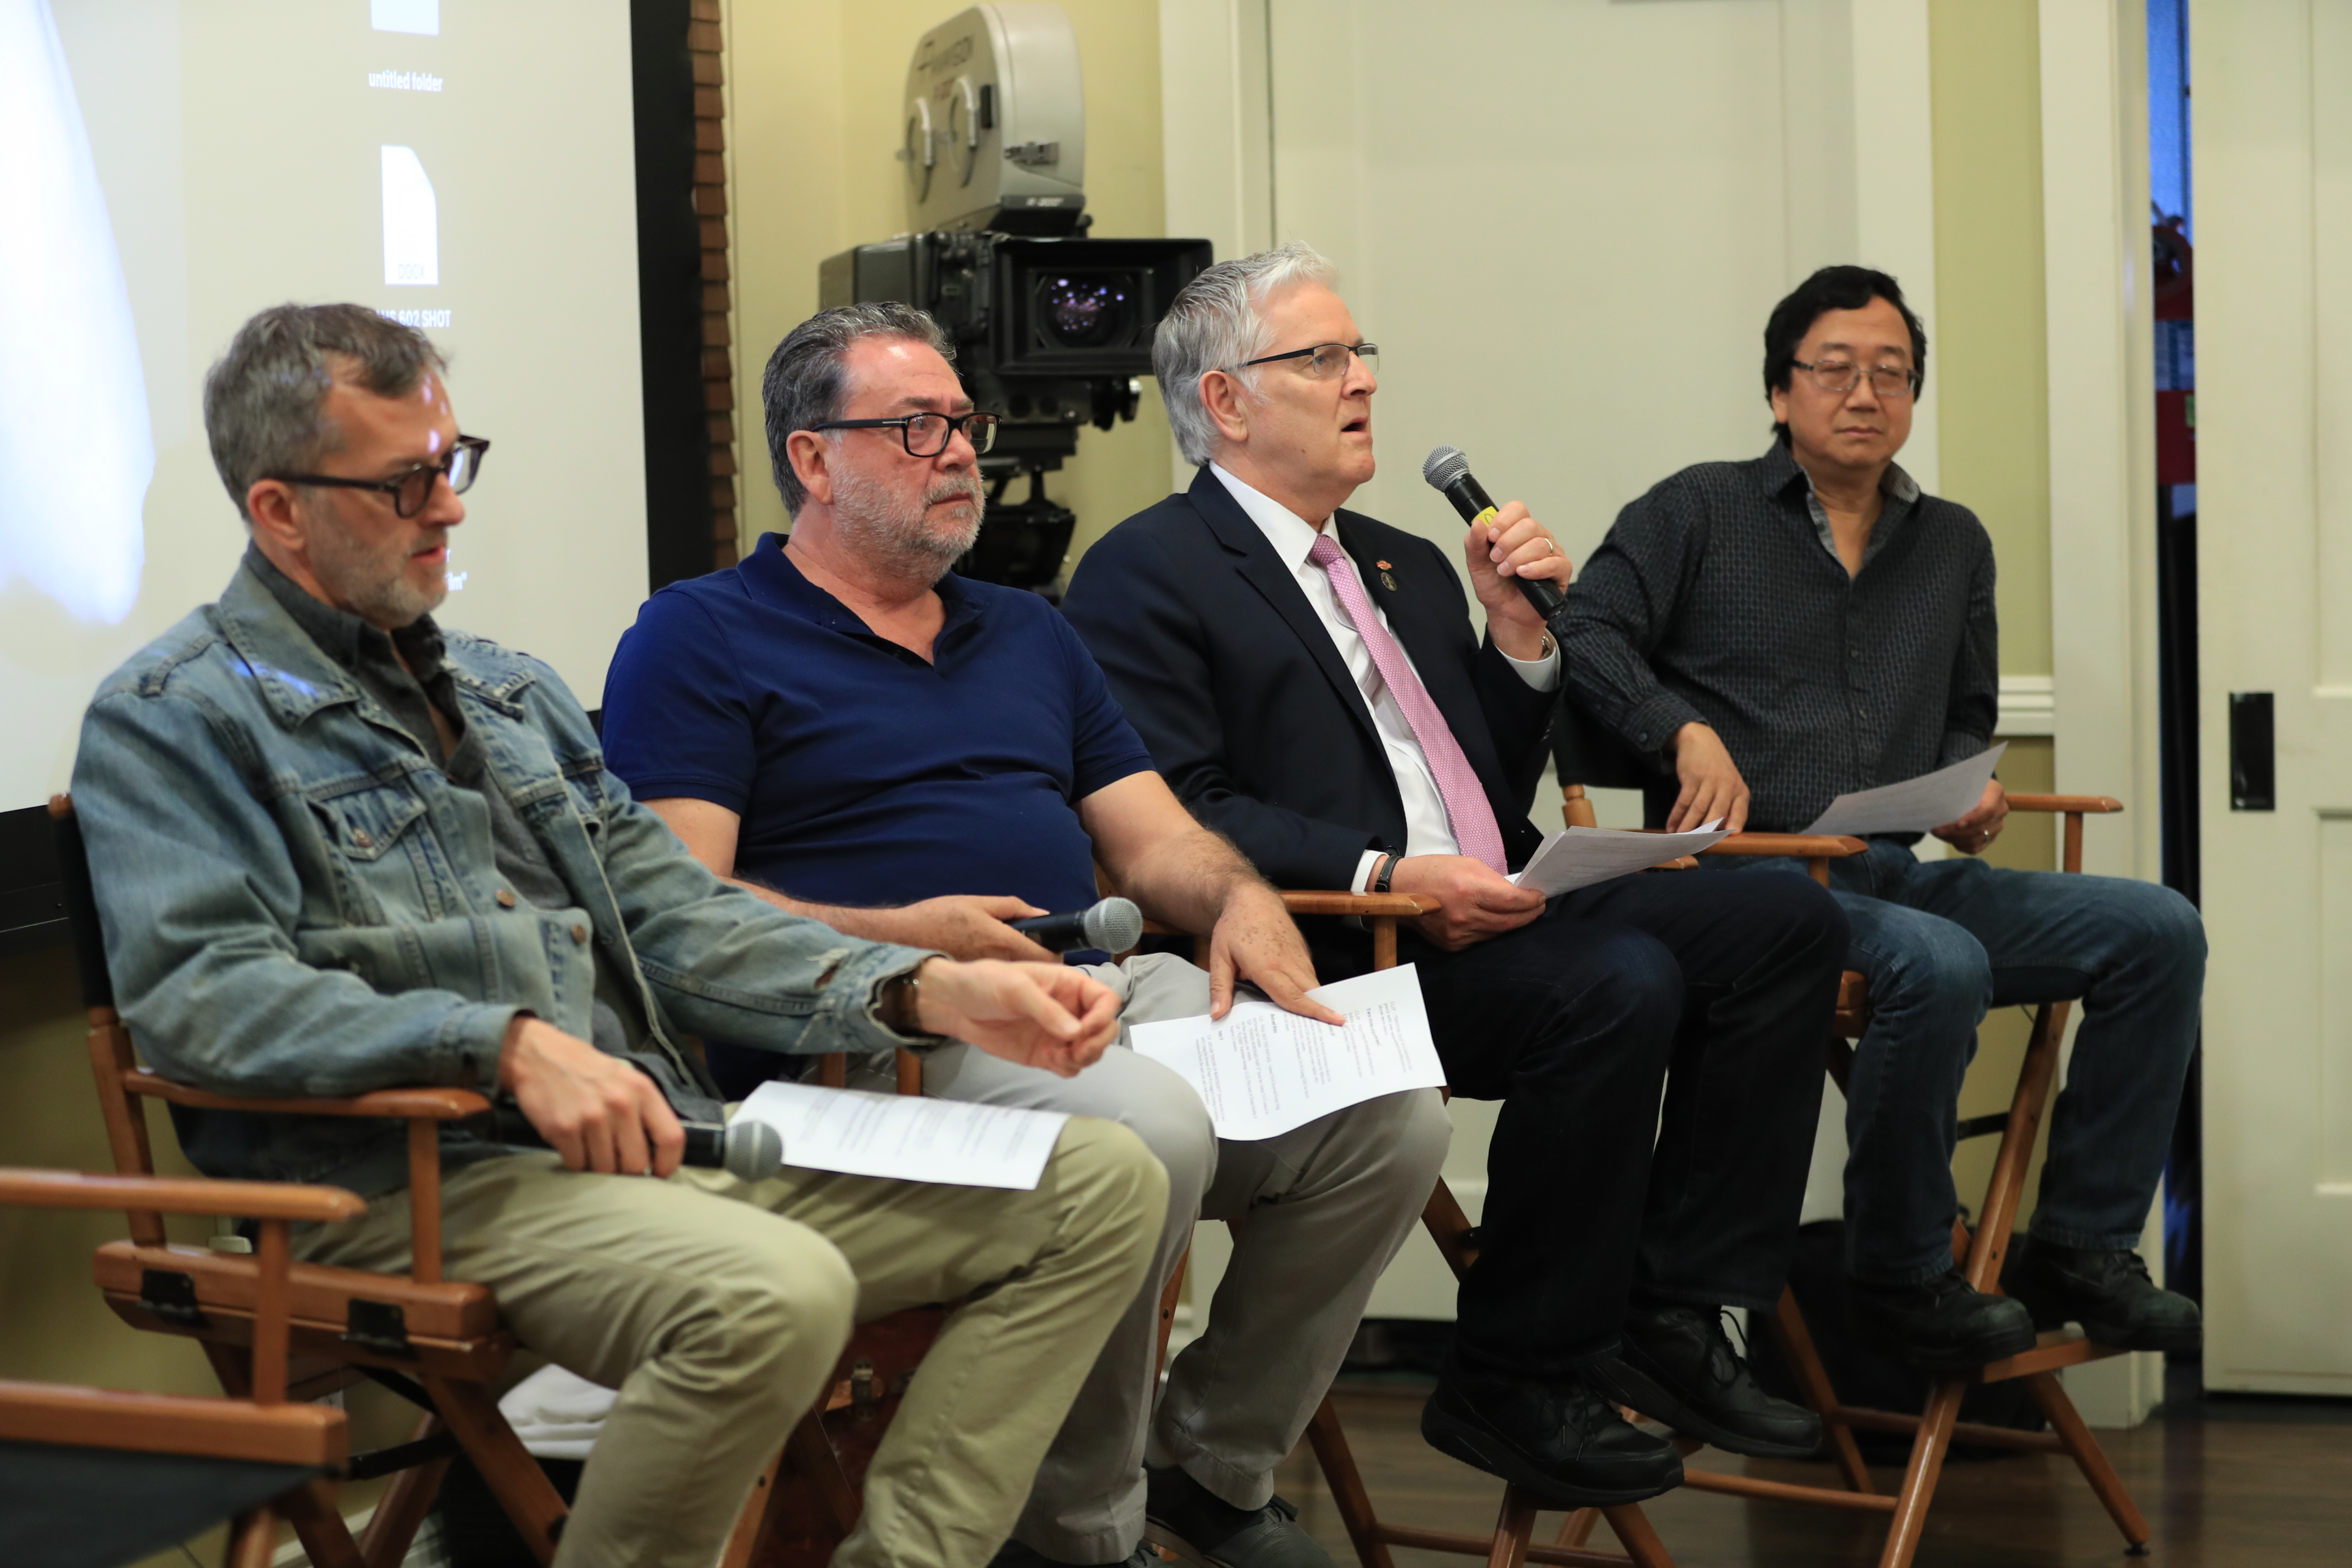 At the ASC Clubhouse, IMAX Chief Quality Officer David Keighley introduces panelists (from left) Mark Worthington, Guillermo Navarro, ASC, AMC and Michael Goi, ASC. Photo by James Neihouse, ASC